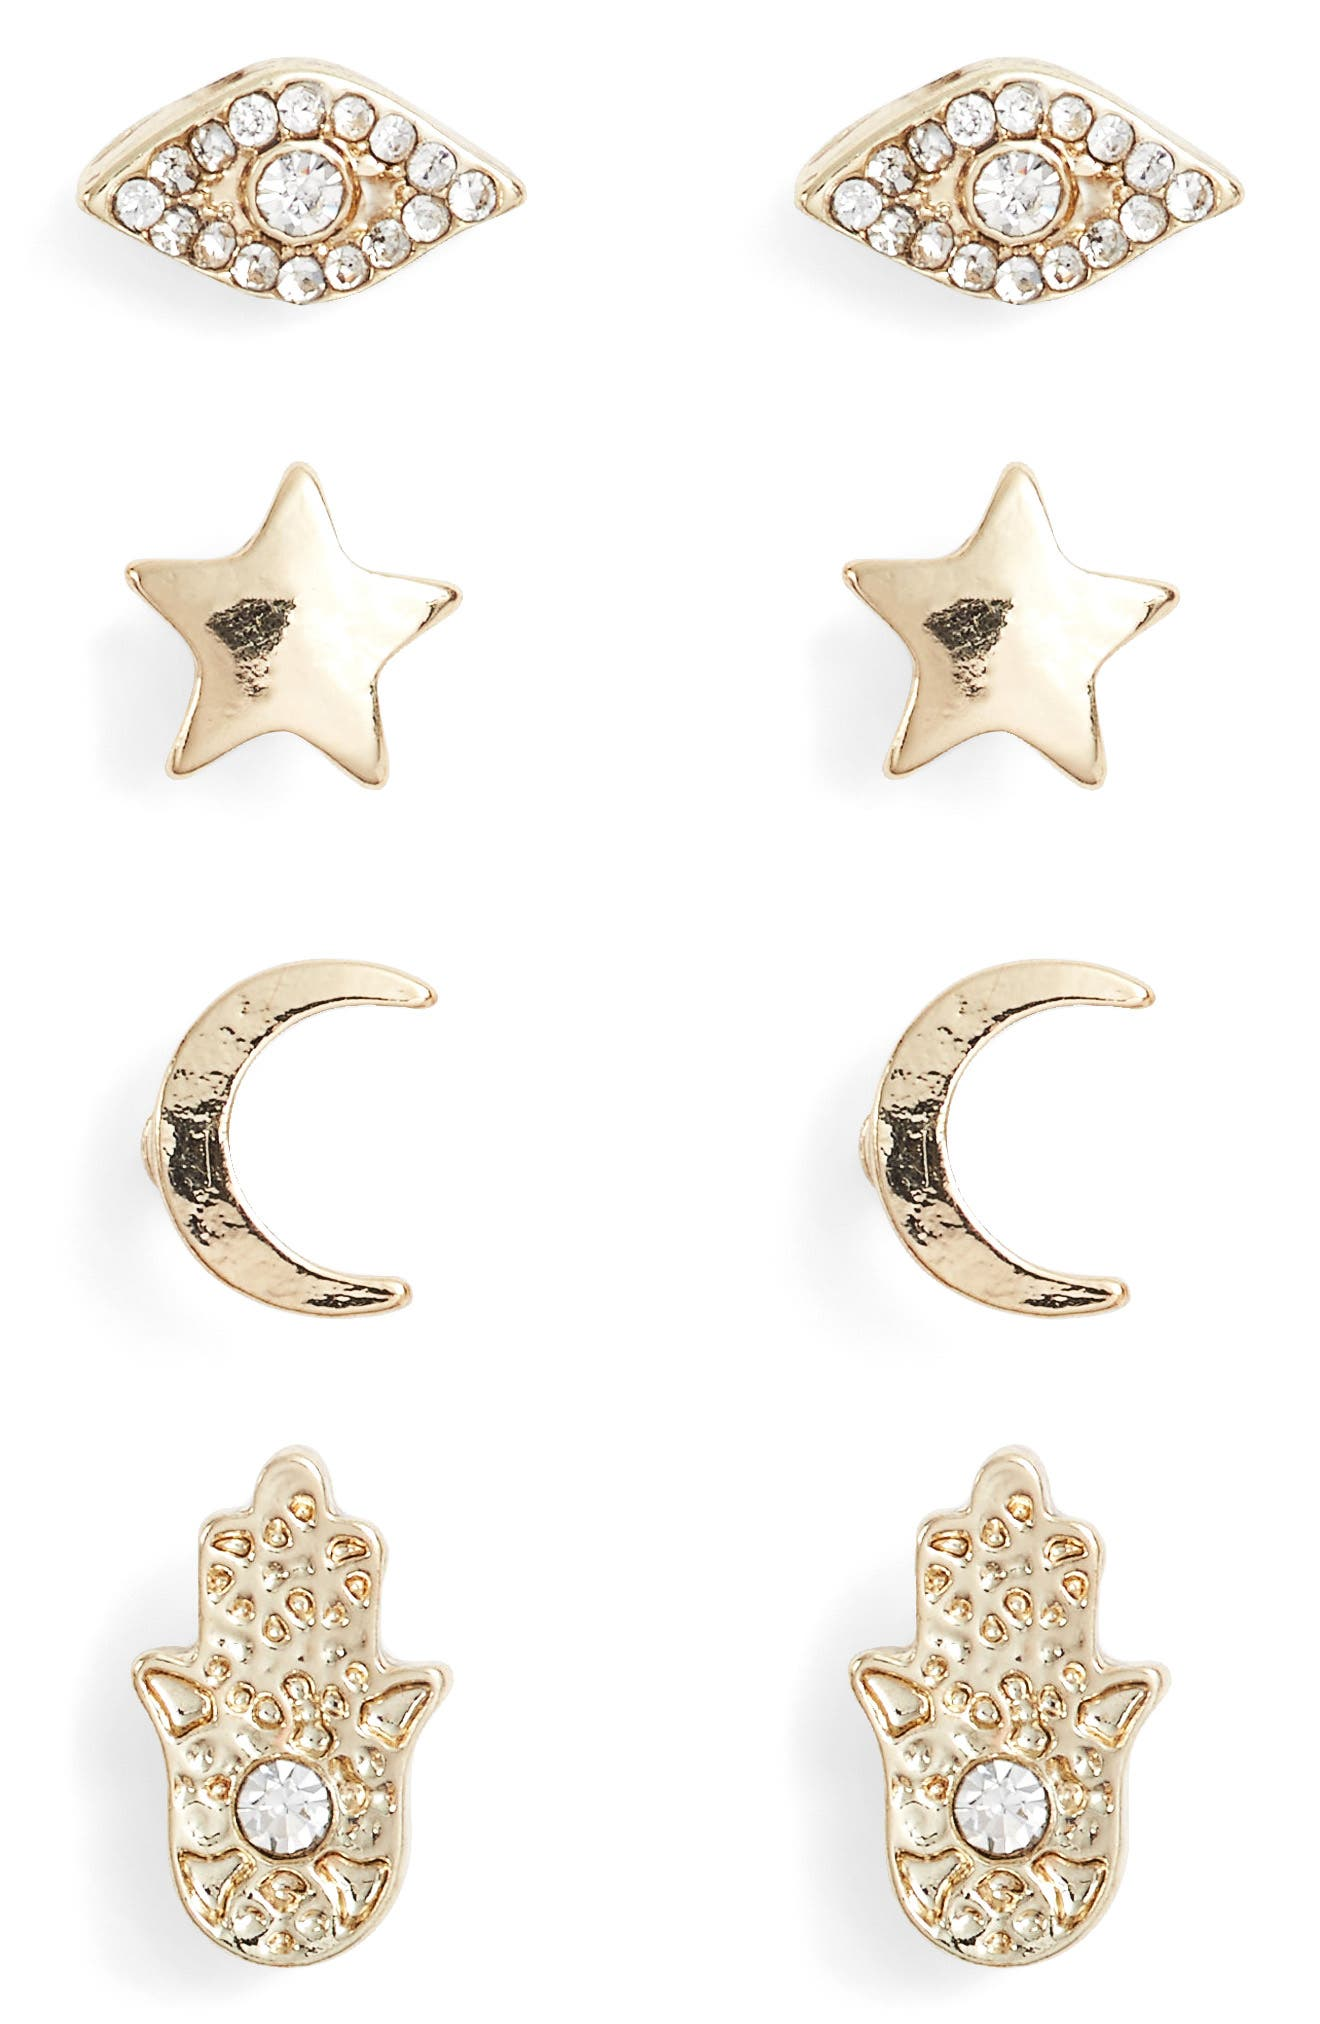 Set of 4 Stud Earrings,                         Main,                         color, GOLD